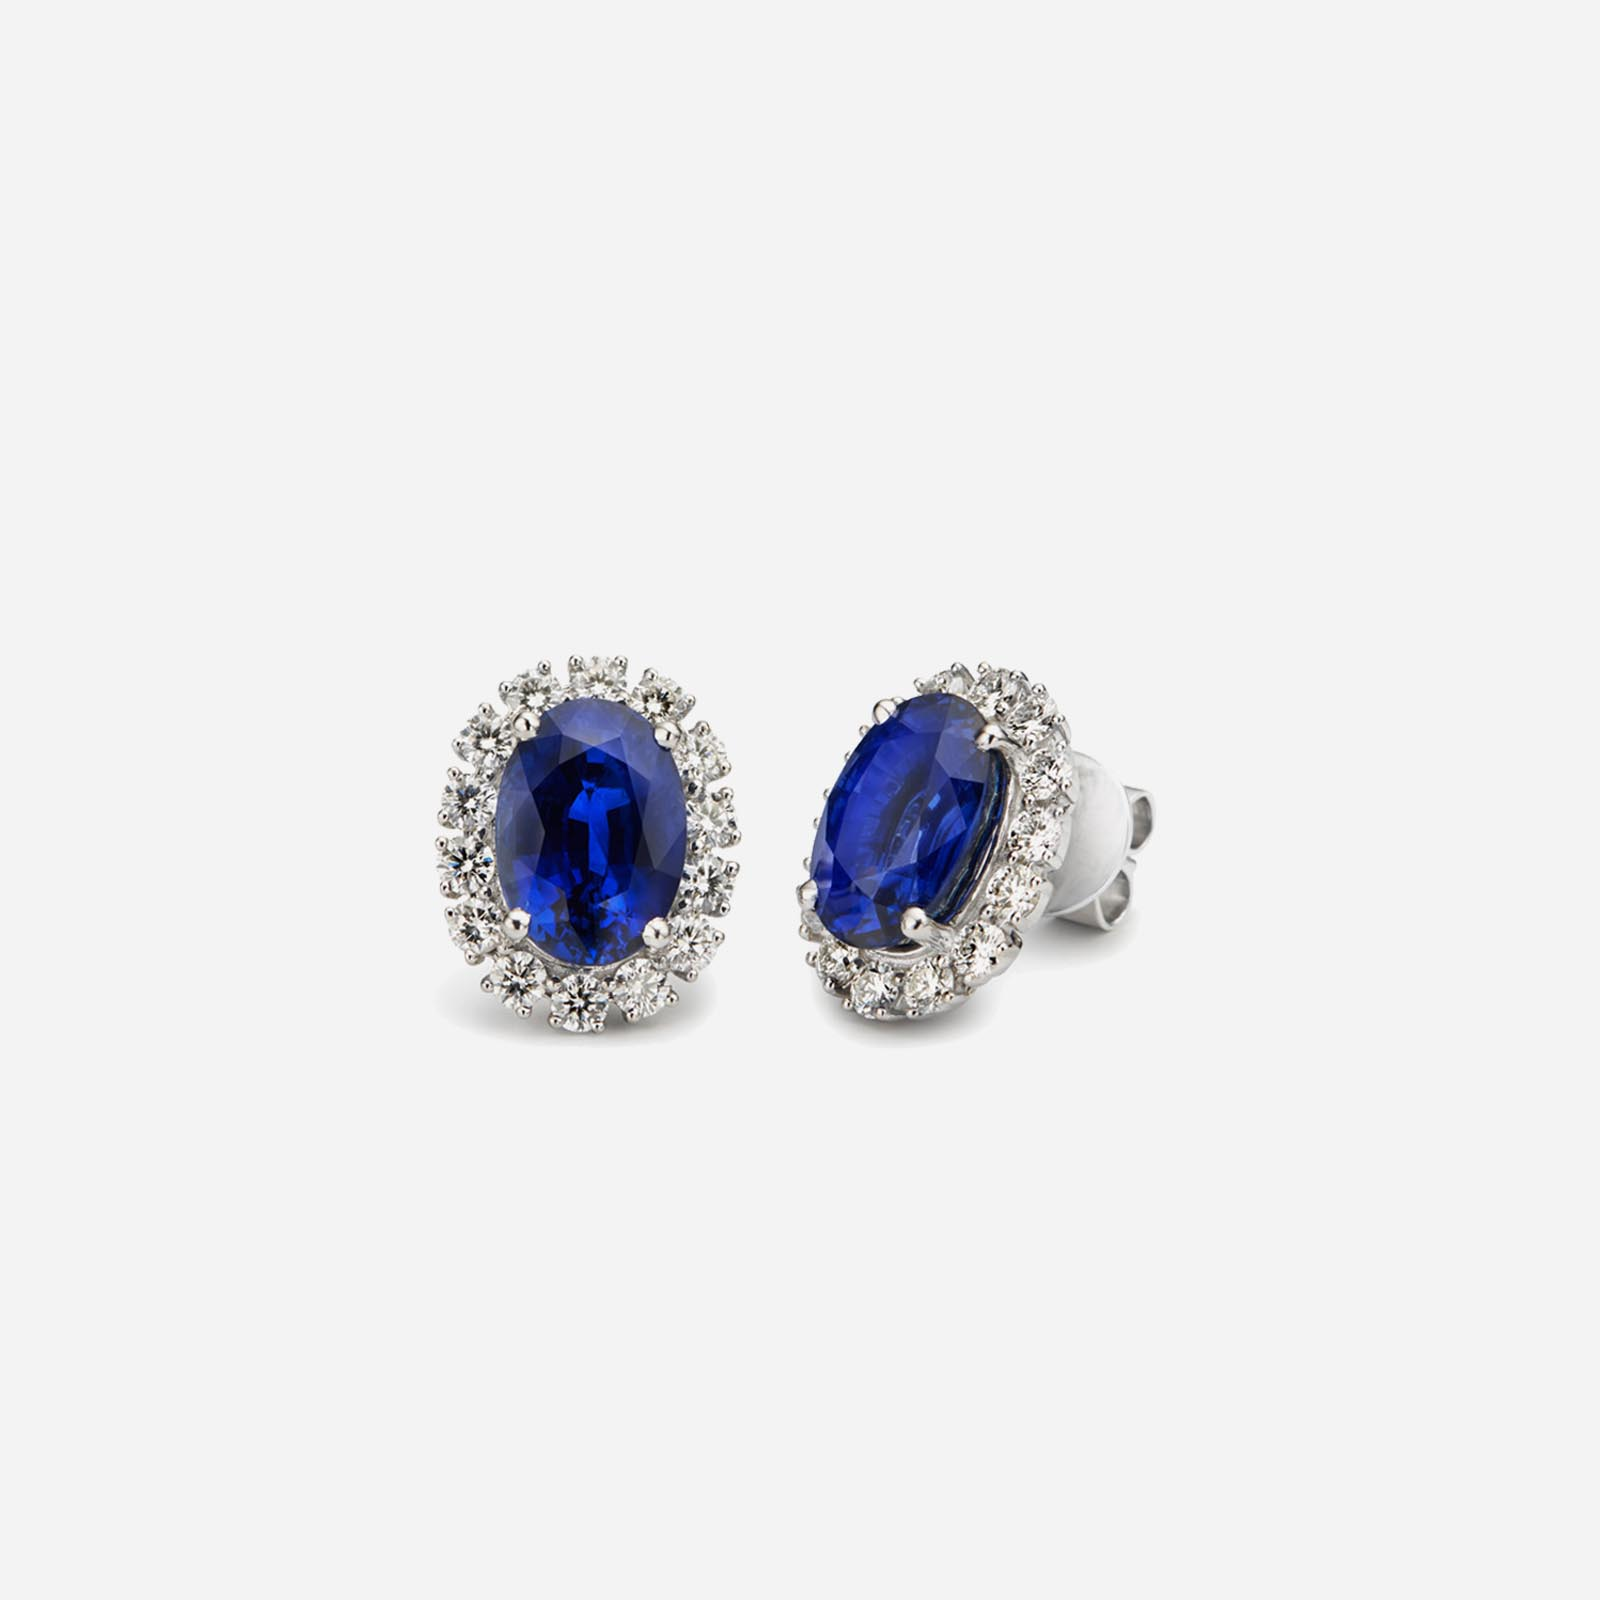 Blue-sapphire Passion Beauty Earrings